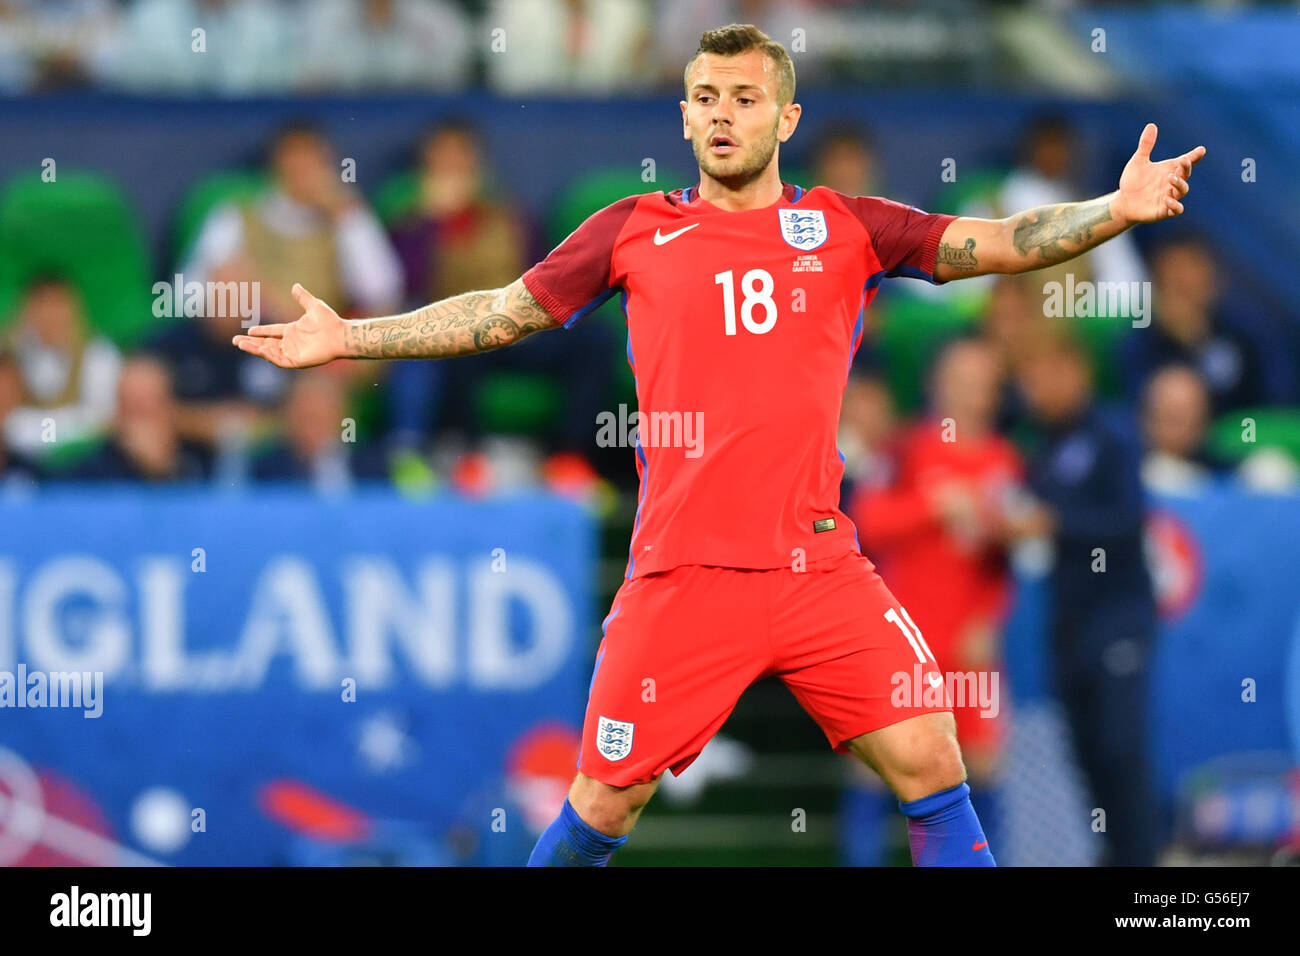 Saint-Etienne, France. 20th June, 2016. Jack Wilshere of England reacts during the preliminary round Group B match - Stock Image